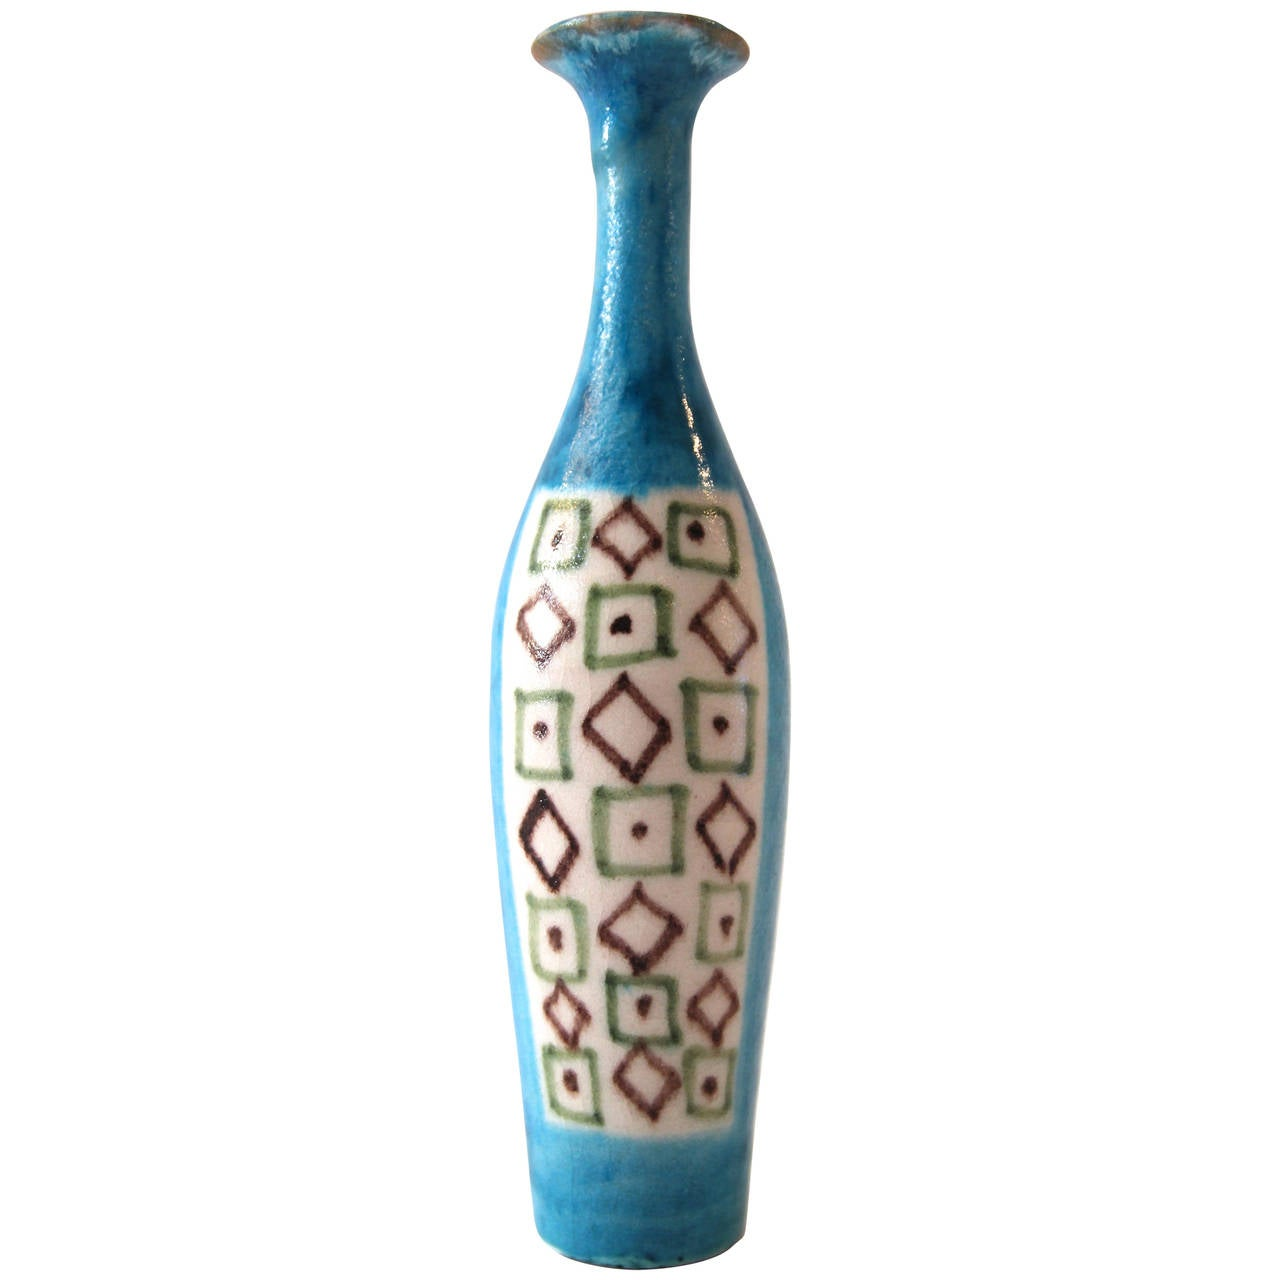 Guido Gambone Ceramic Bottle, Signed and Stamped, Italy, 1960